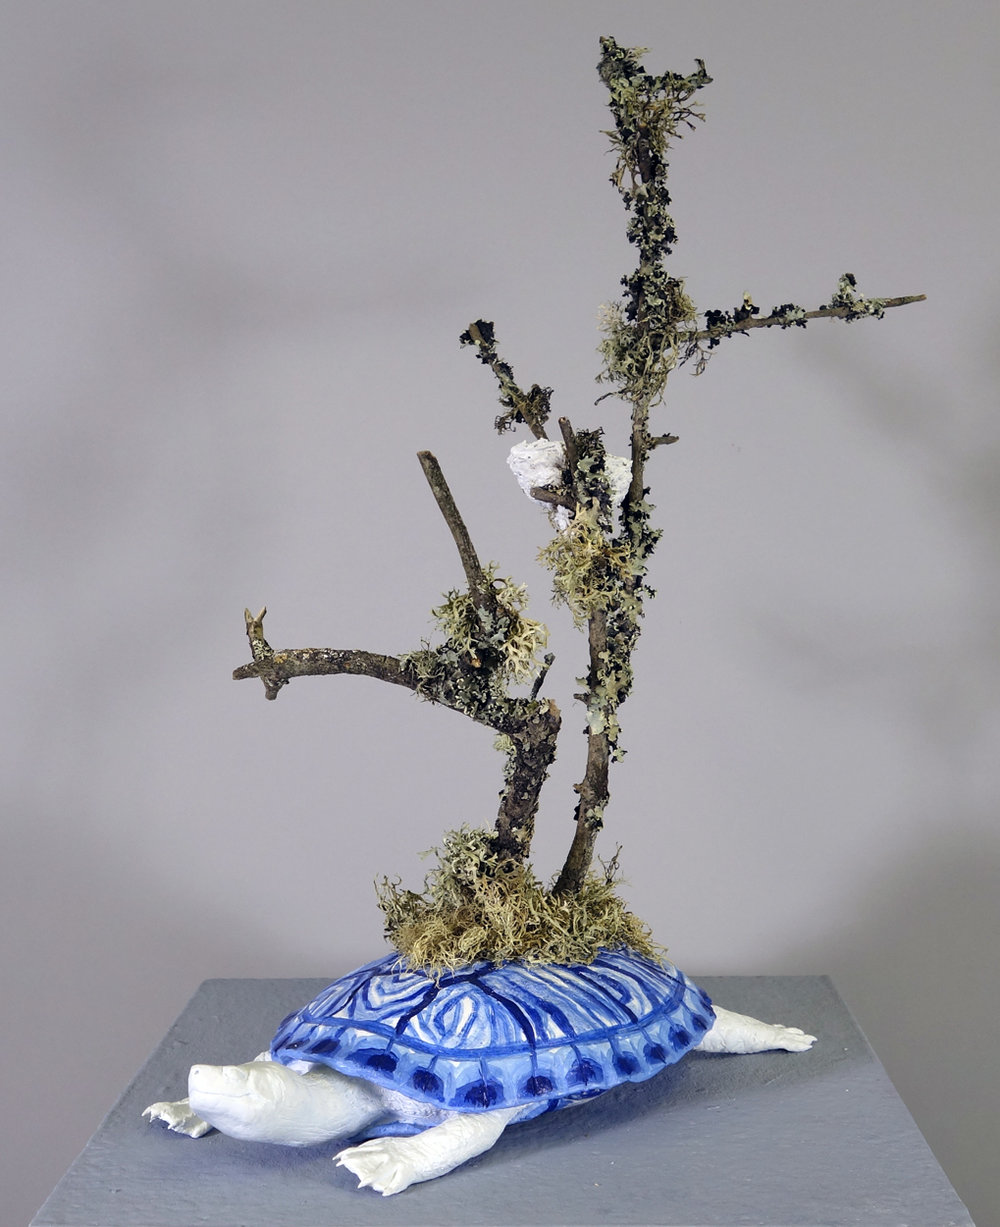 Turtile - Mixed media including QuickCure Clay, found branches, and acrylic, 12.5x7.5x17.5